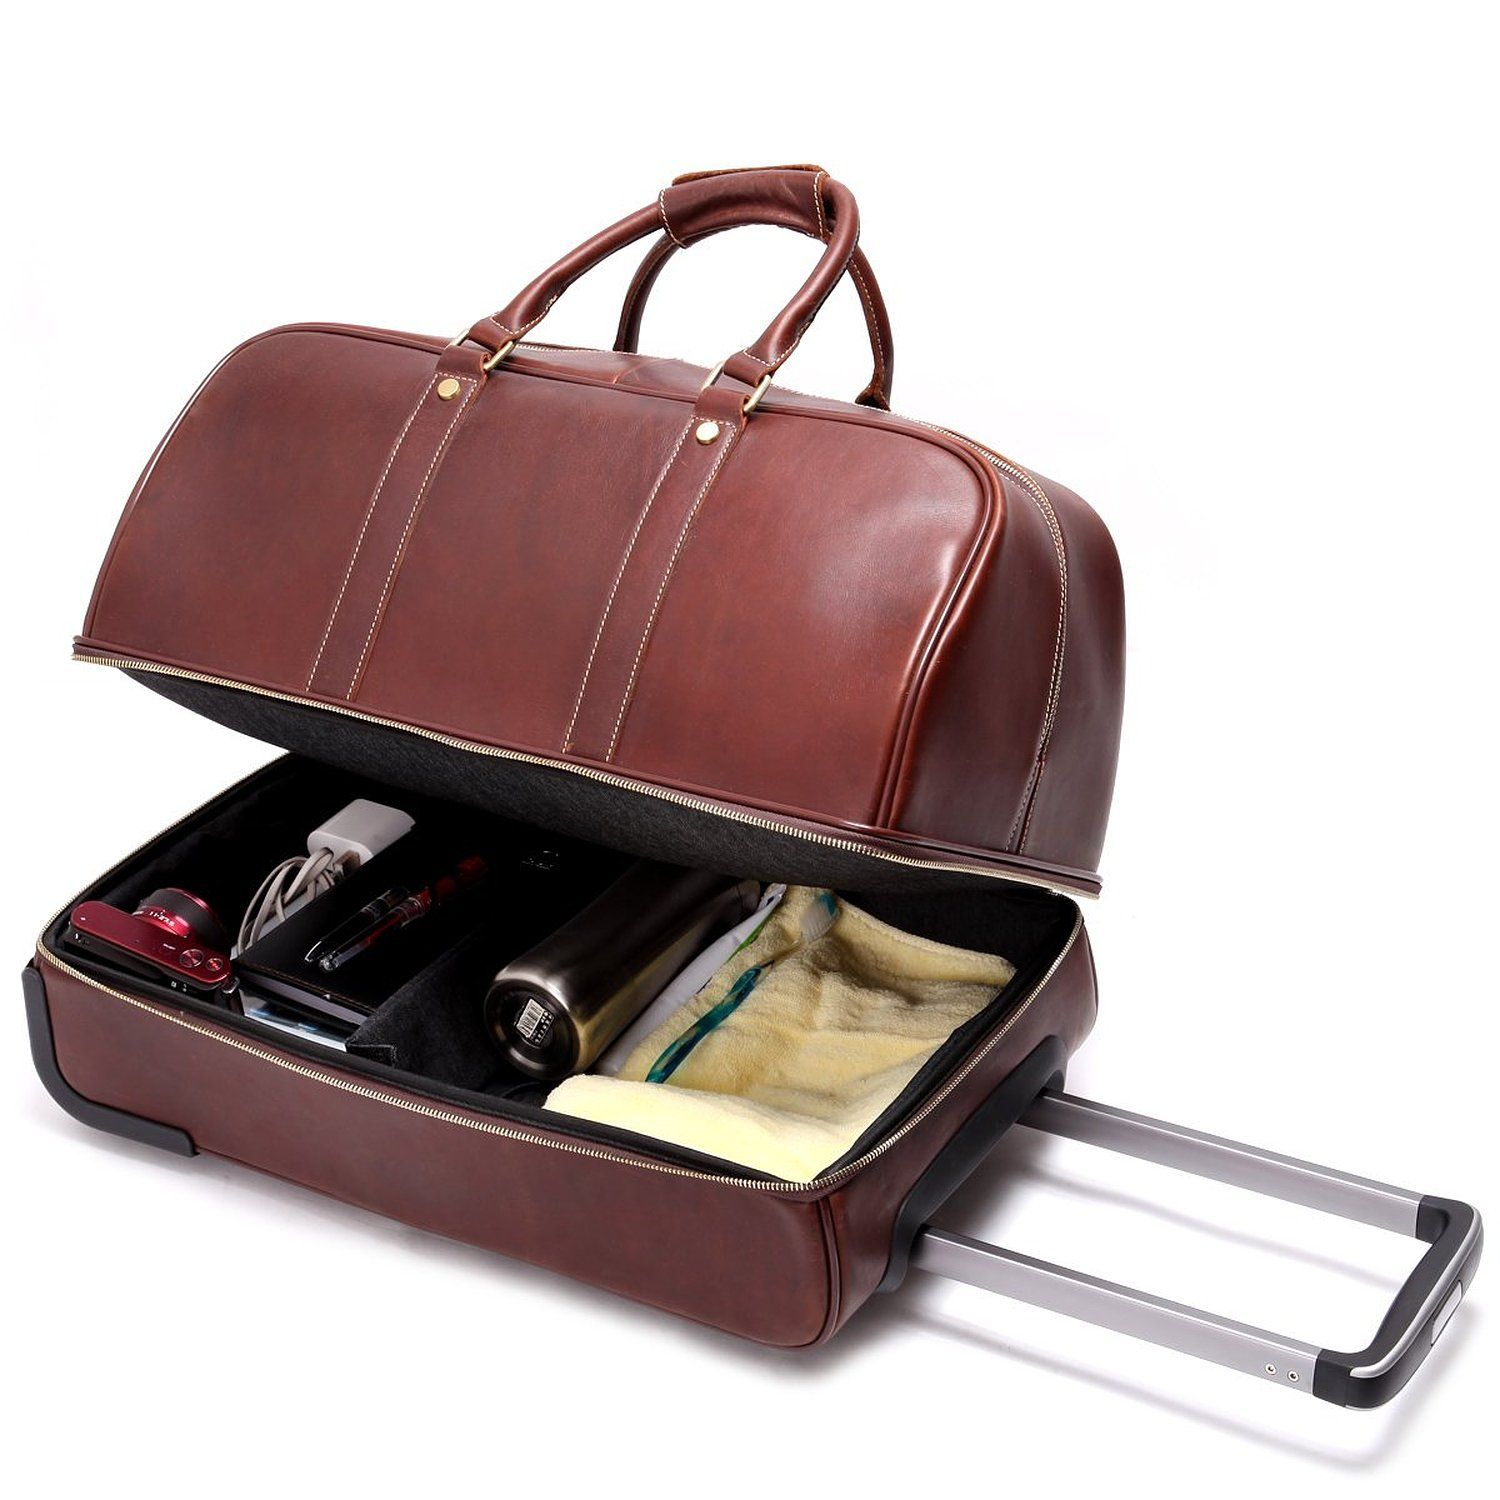 86e60e39f87b Amazon.com: Leathario Men's Leather Luggage Wheeled Duffle, Leather ...